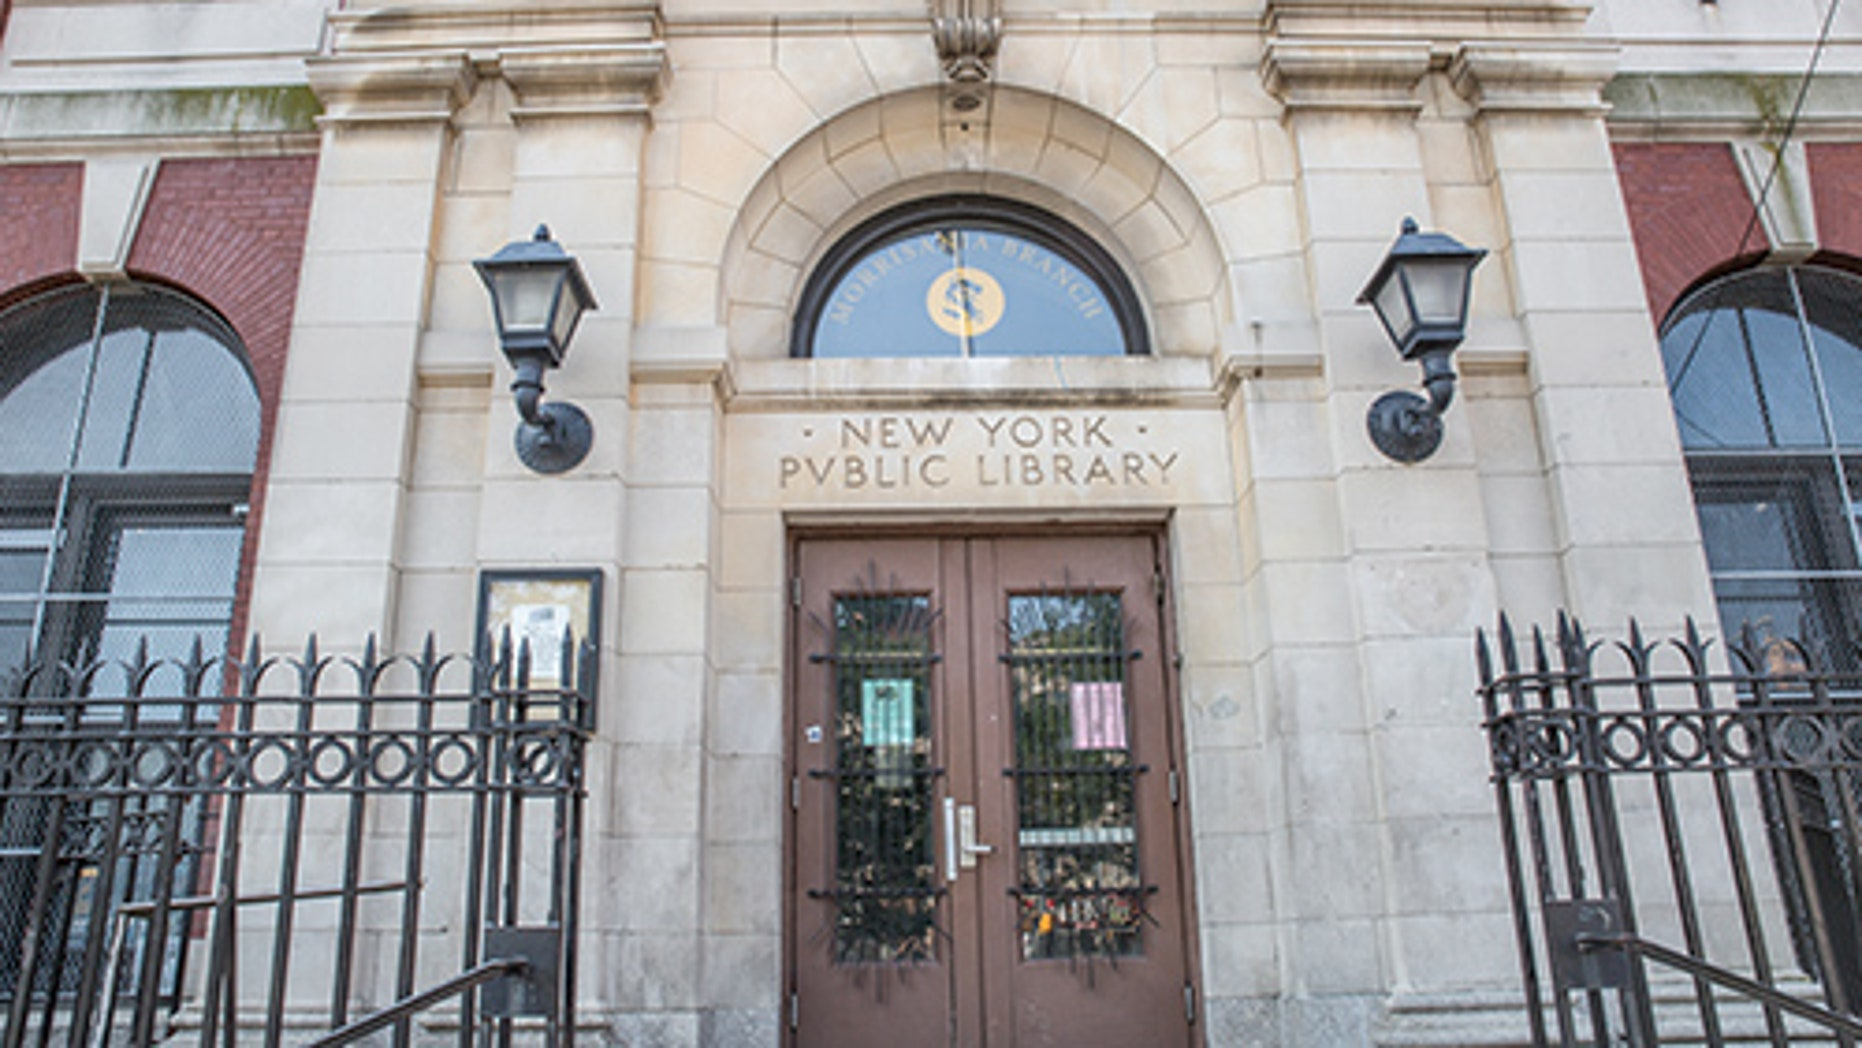 The Morrisania (Bronx) branch of the New York Public Library. (Credit: NYPL)